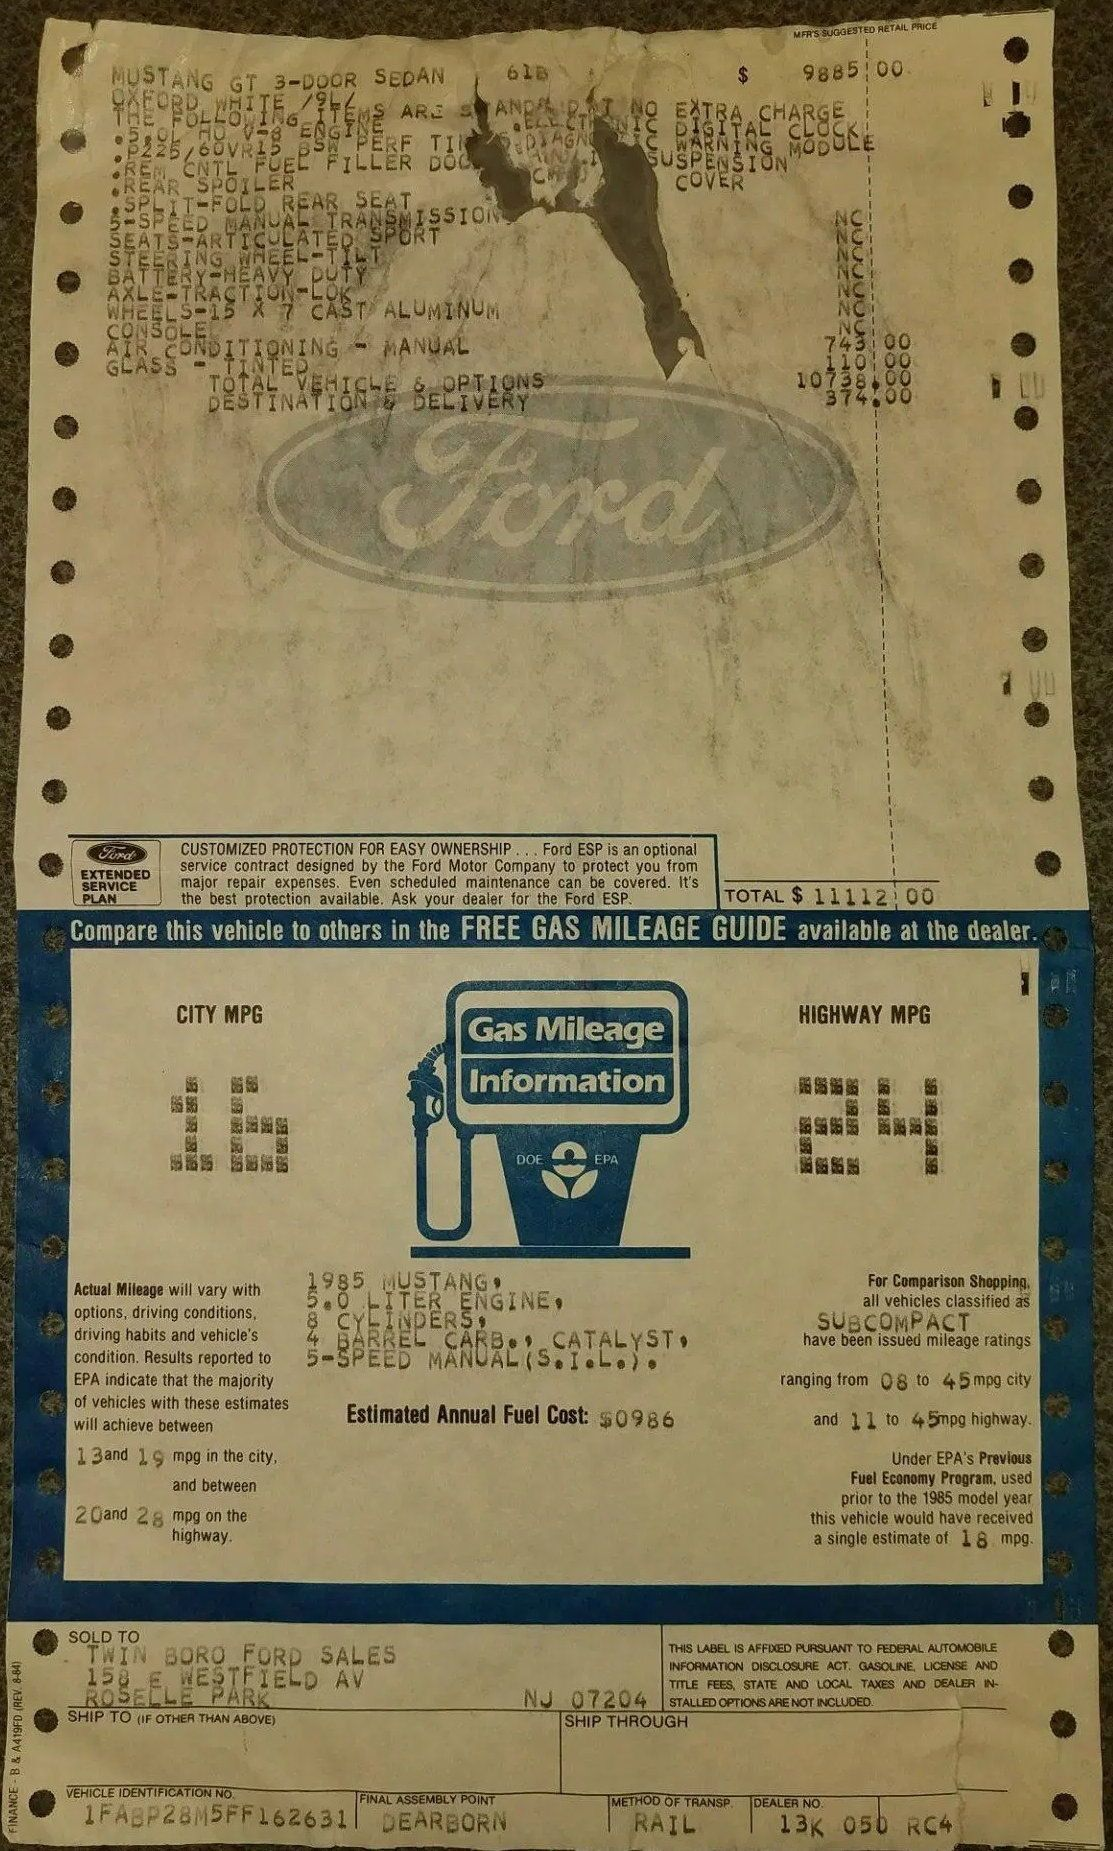 1985 Ford Mustang Gt Window Sticker In 2020 Ford Mustang Gt